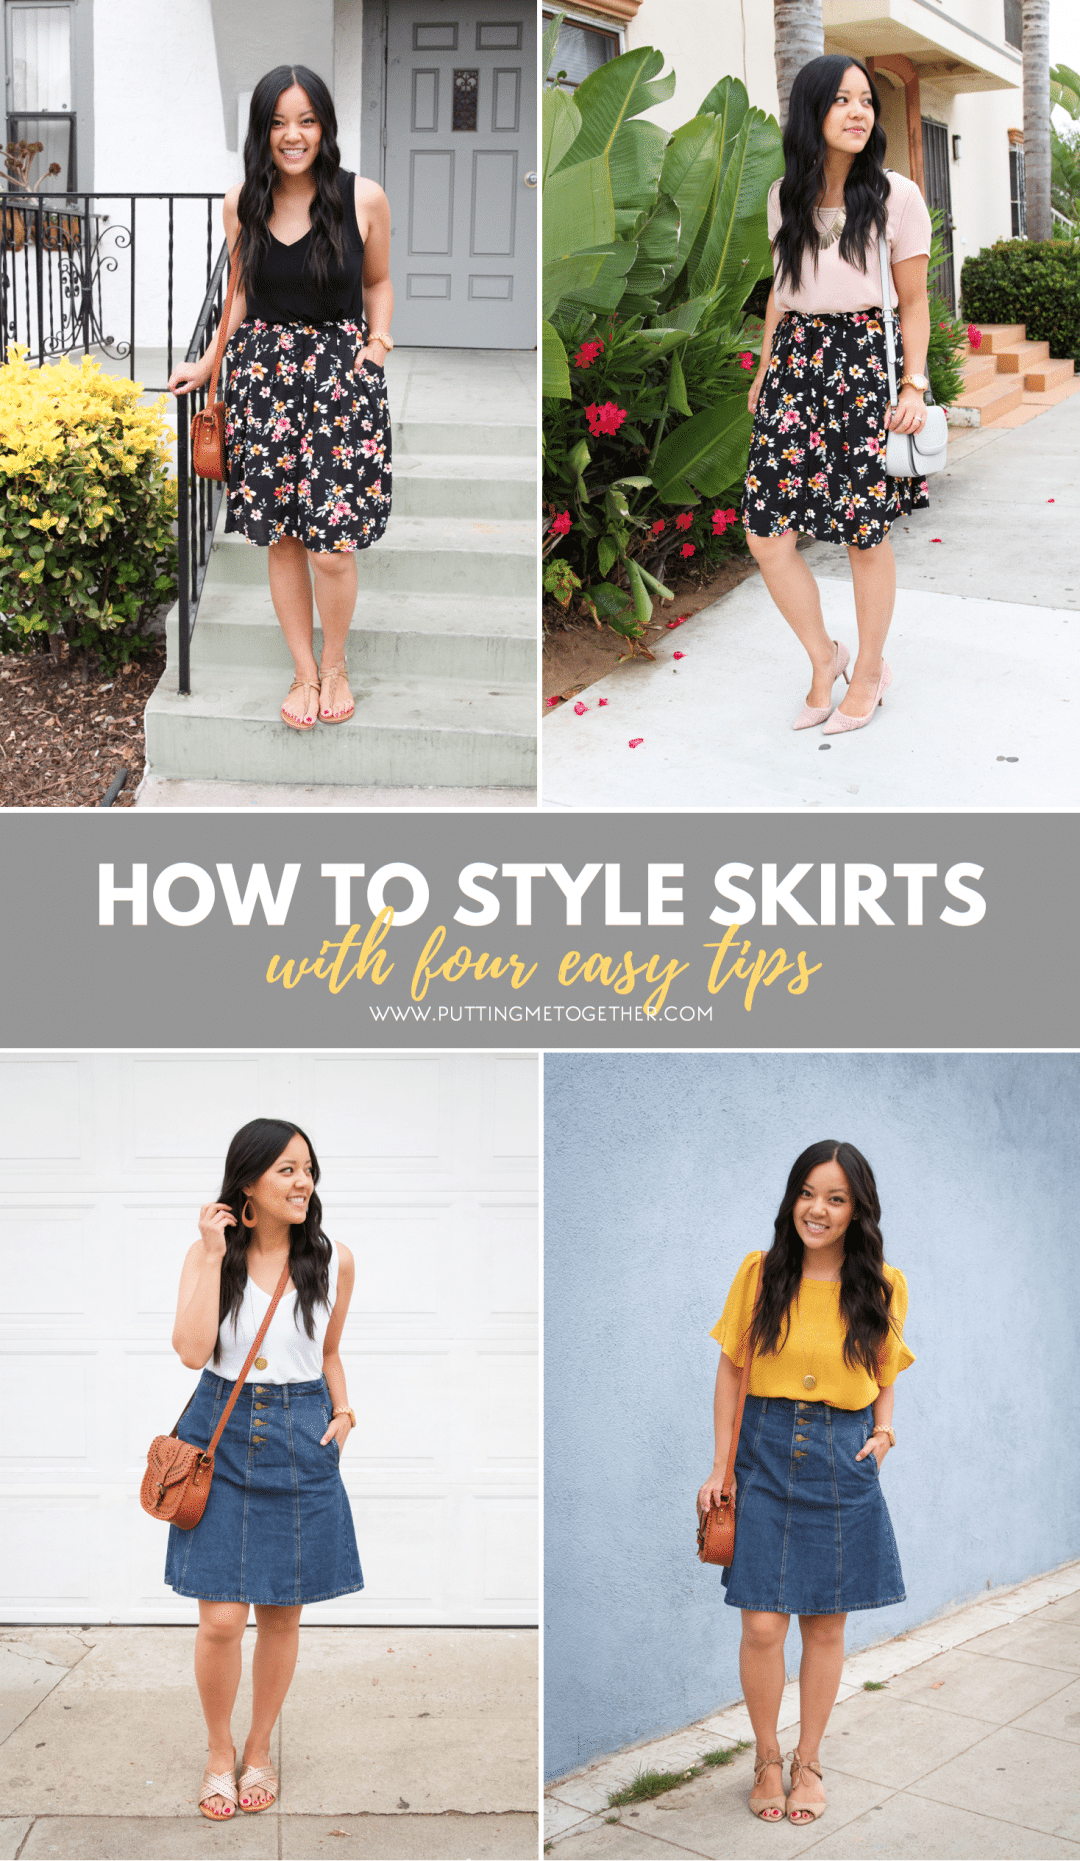 How to Style Skirts with 4 Easy Tips